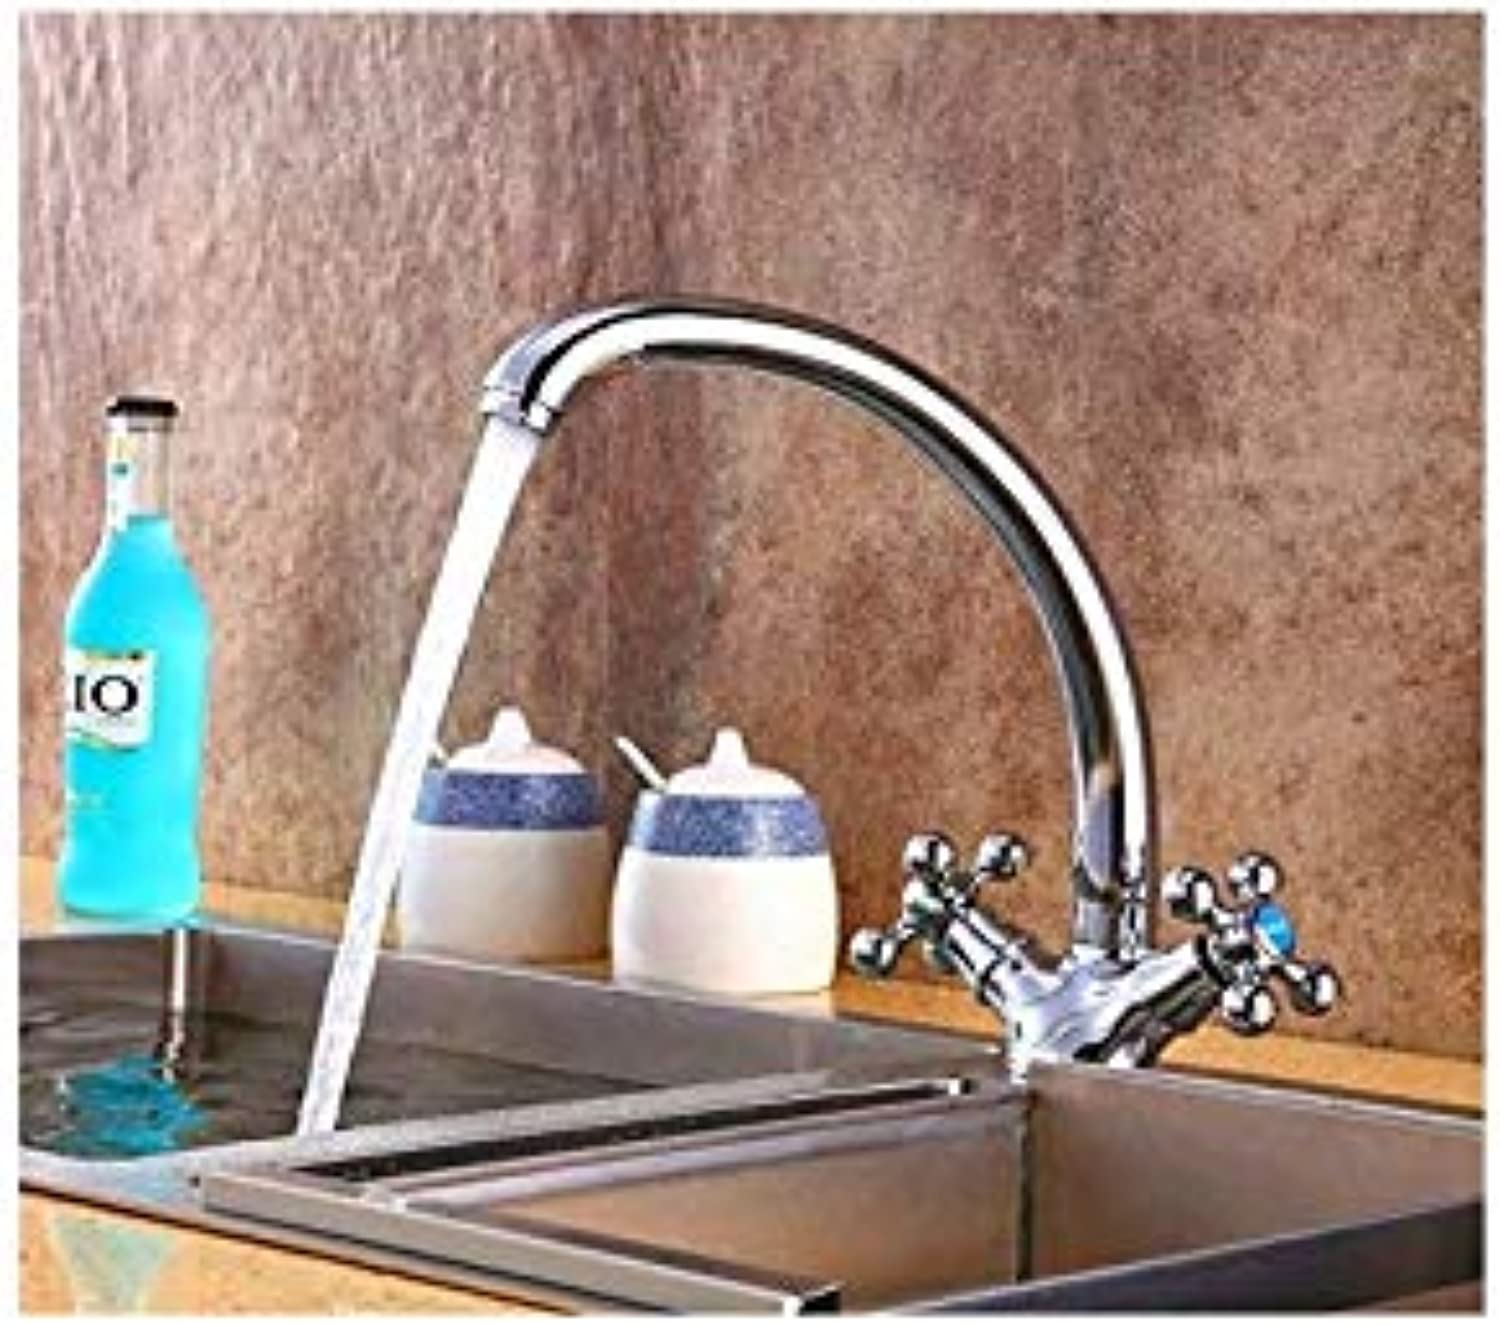 Kitchen Faucets Double Handle Solid Kitchen Mixer Cold and Hot Flexible Kitchen Tap Single Lever Hole Water Tap Kitchen Faucet